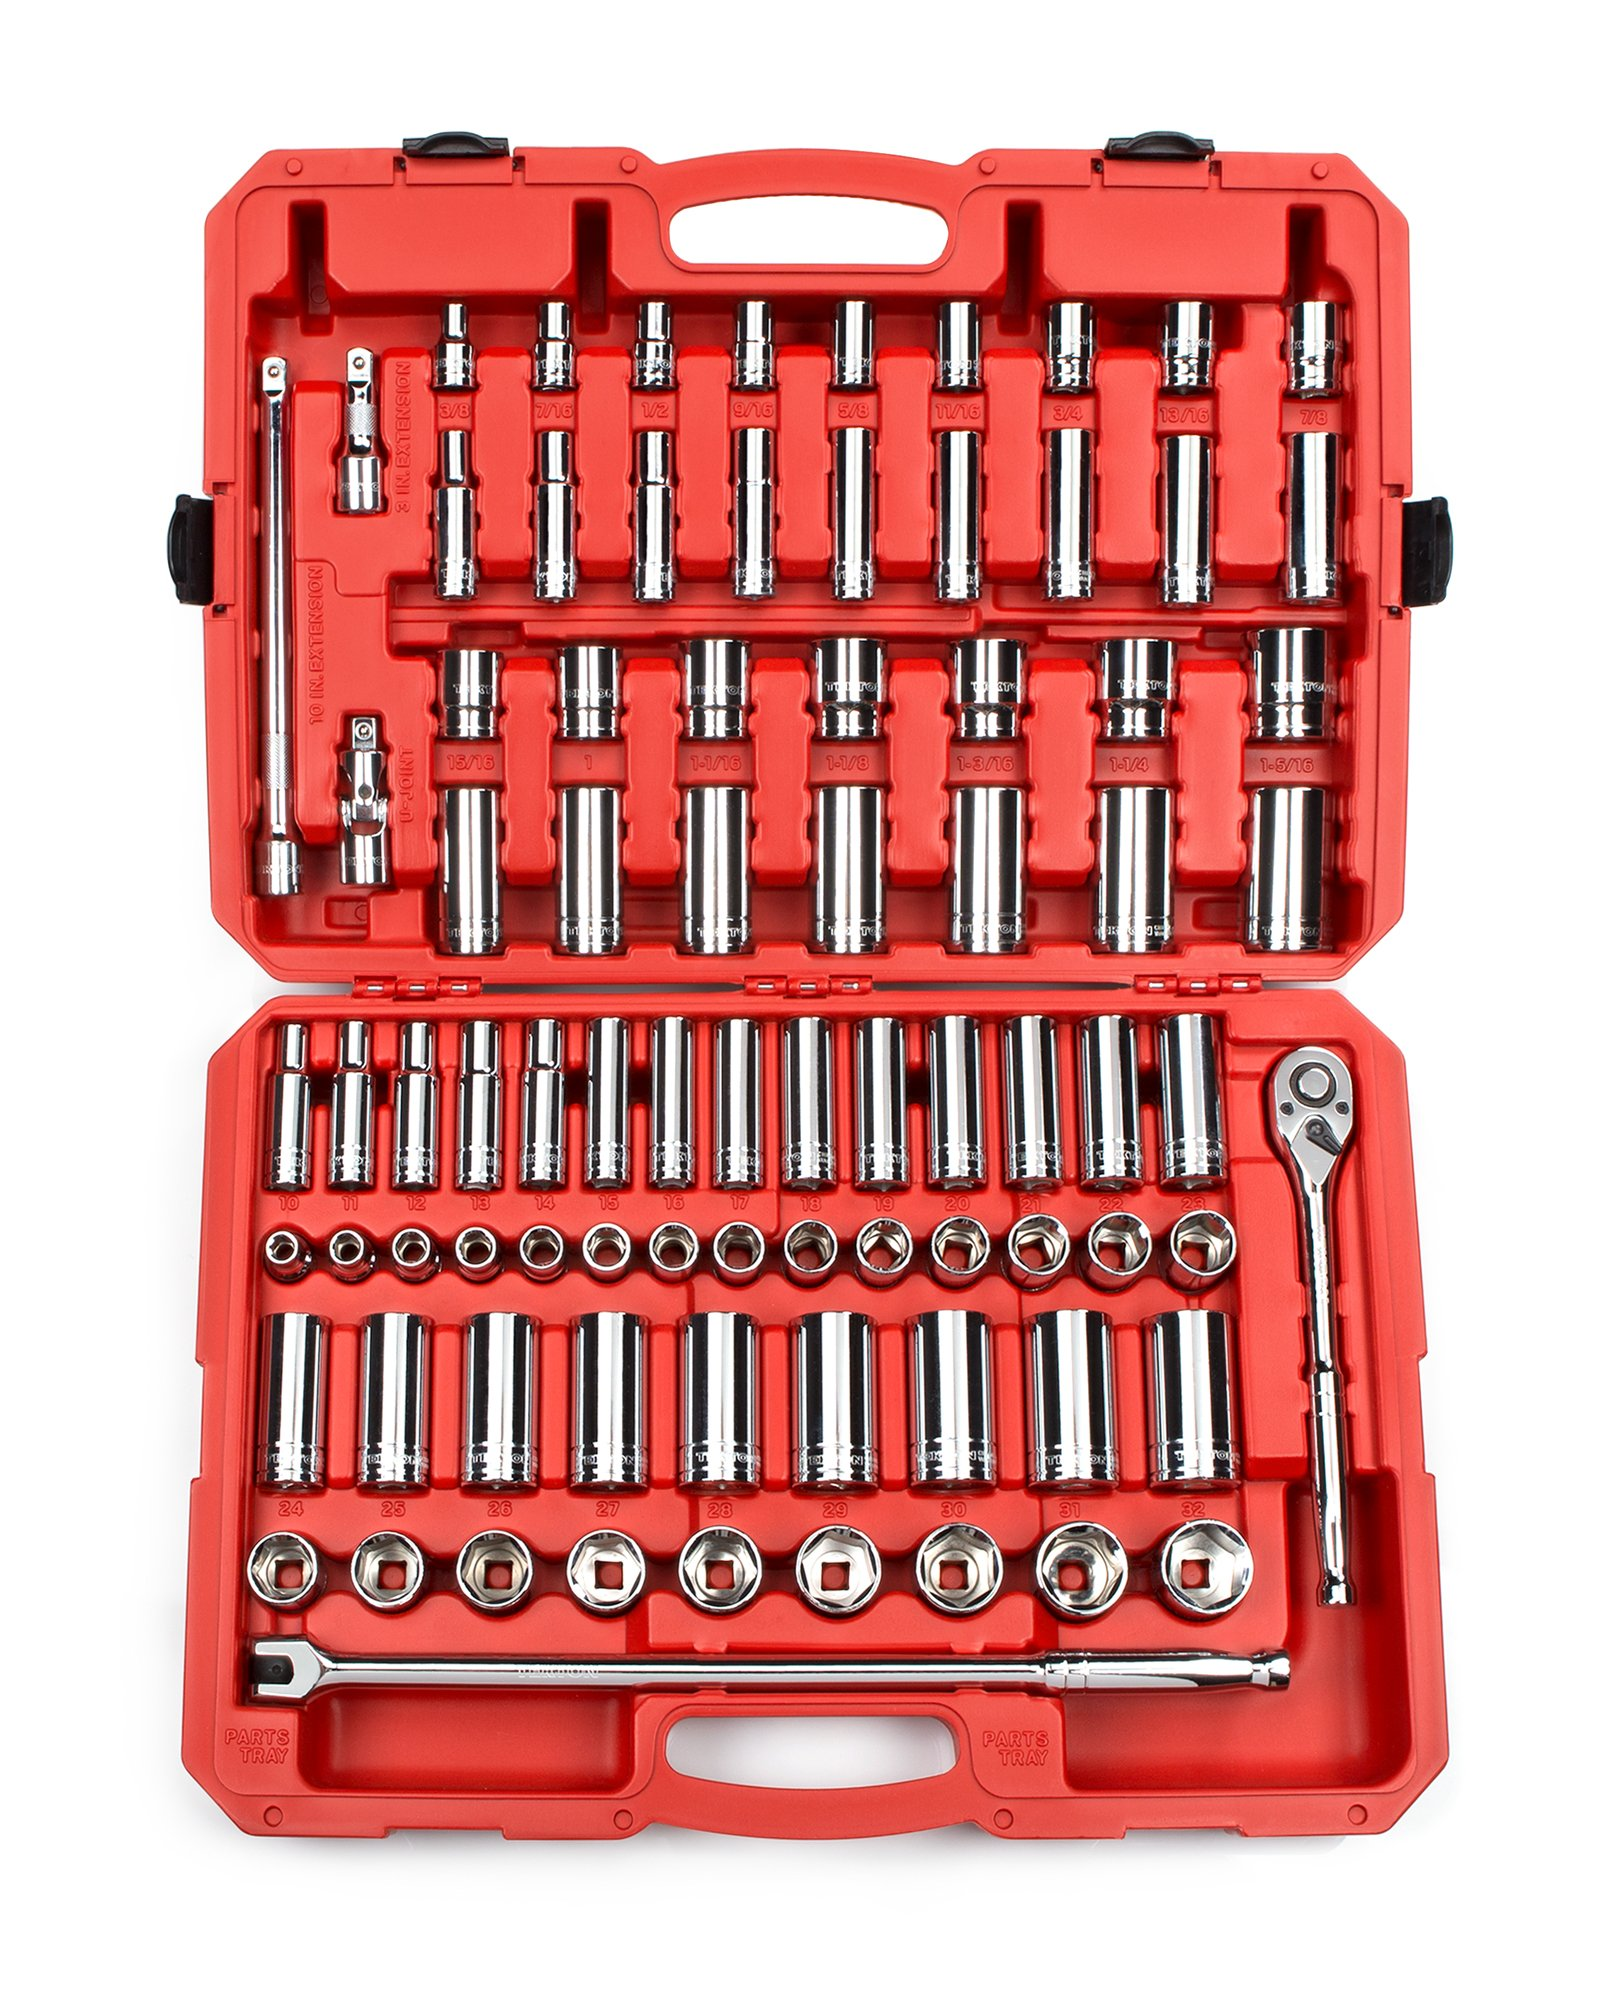 TEKTON 1/2-Inch Drive Socket Set, Inch/Metric, 6-Point, 3/8-Inch - 1-5/16-Inch, 10 mm - 32 mm, 84-Piece | 13203 by TEKTON